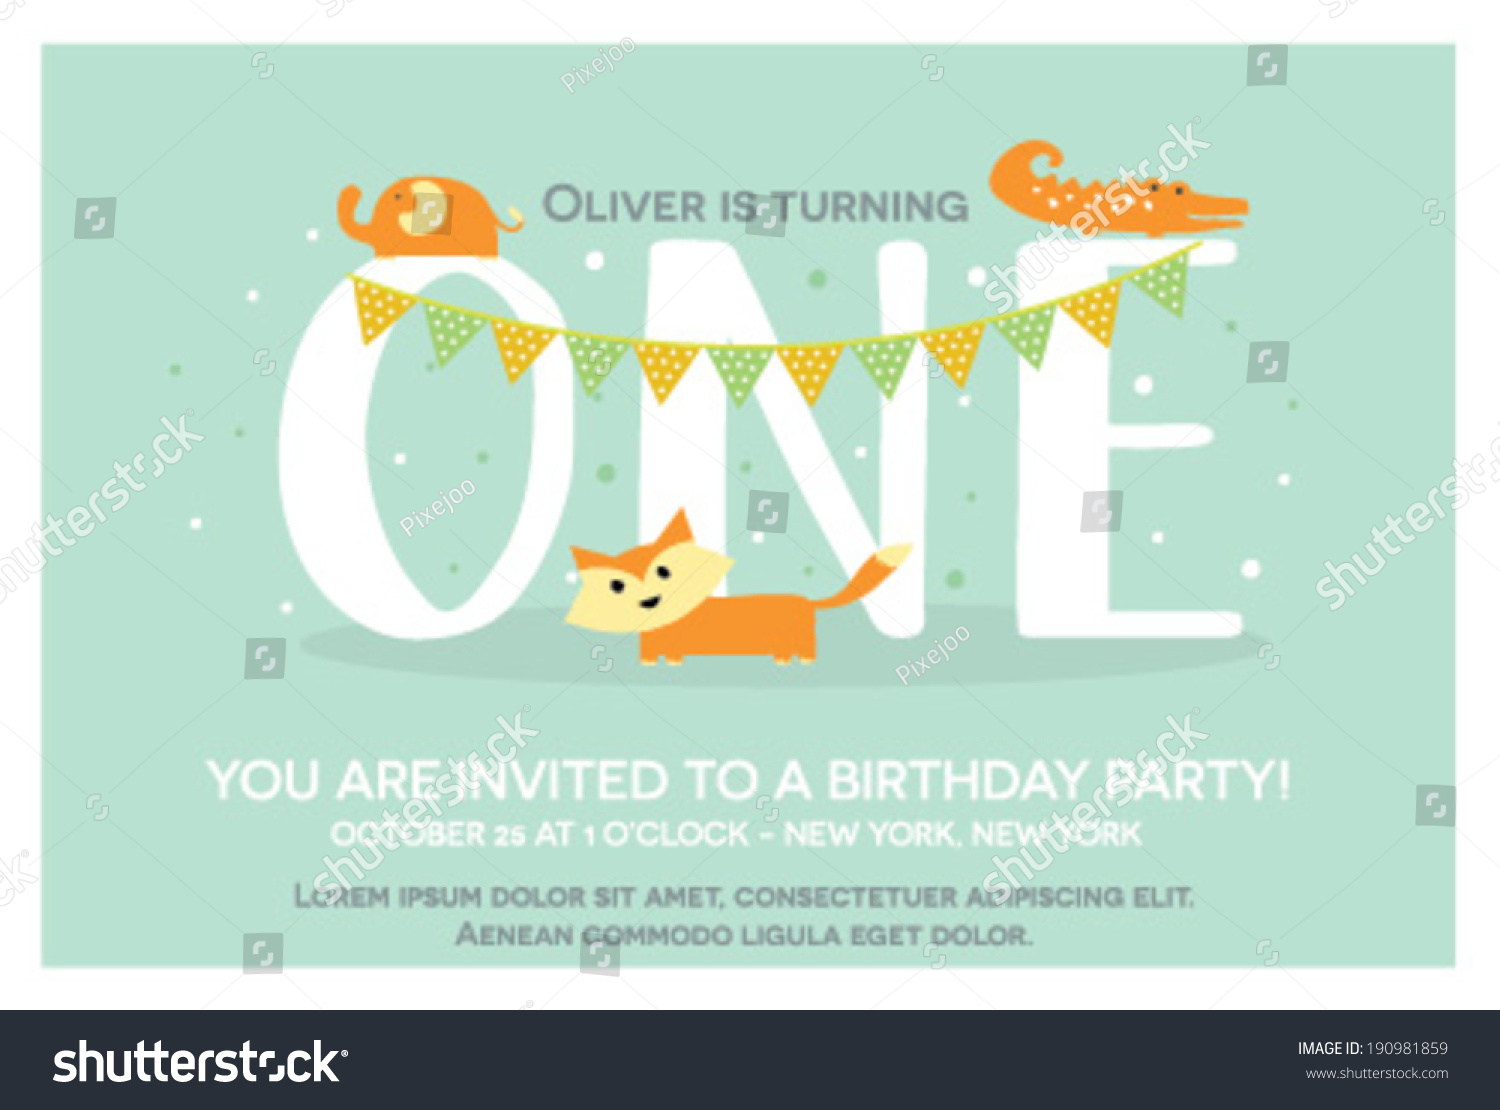 Happy Birthday Invitation Template One Year Stock Vector - One year birthday invitation template